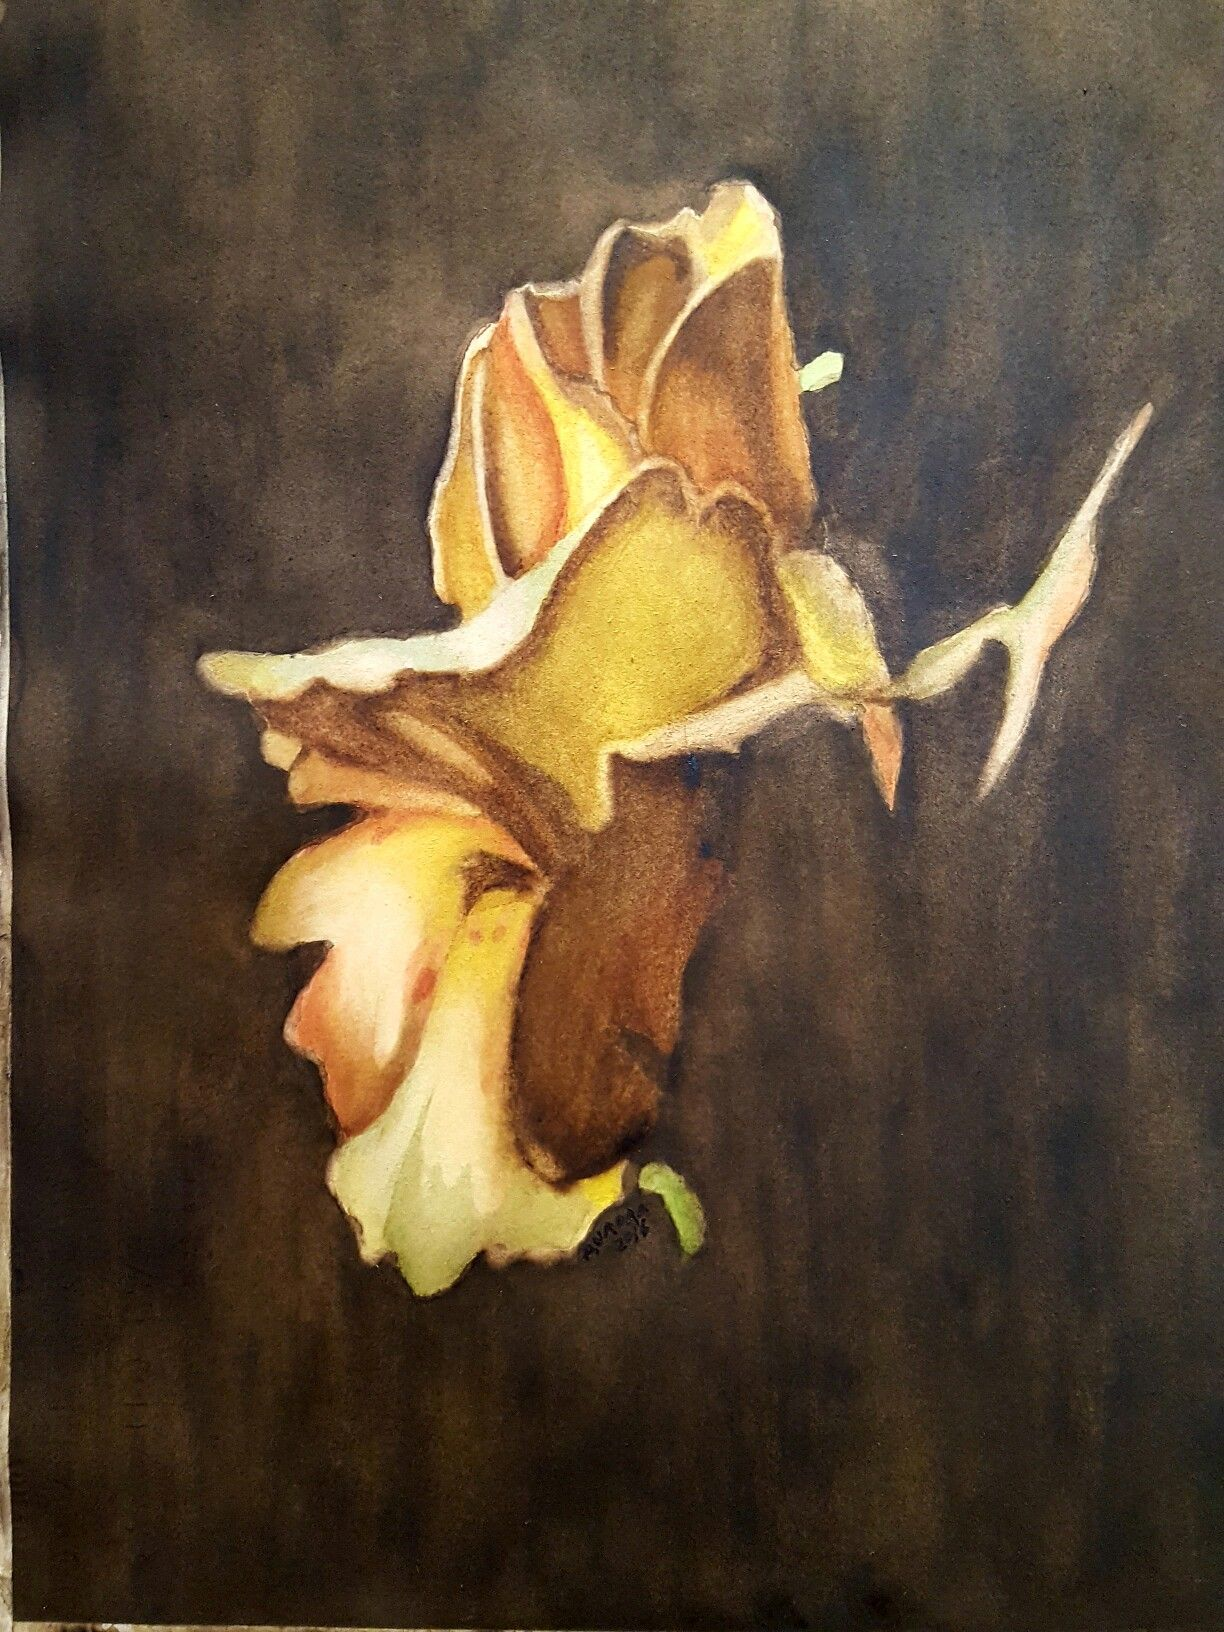 Watercolor painting of a rose.Ujjain